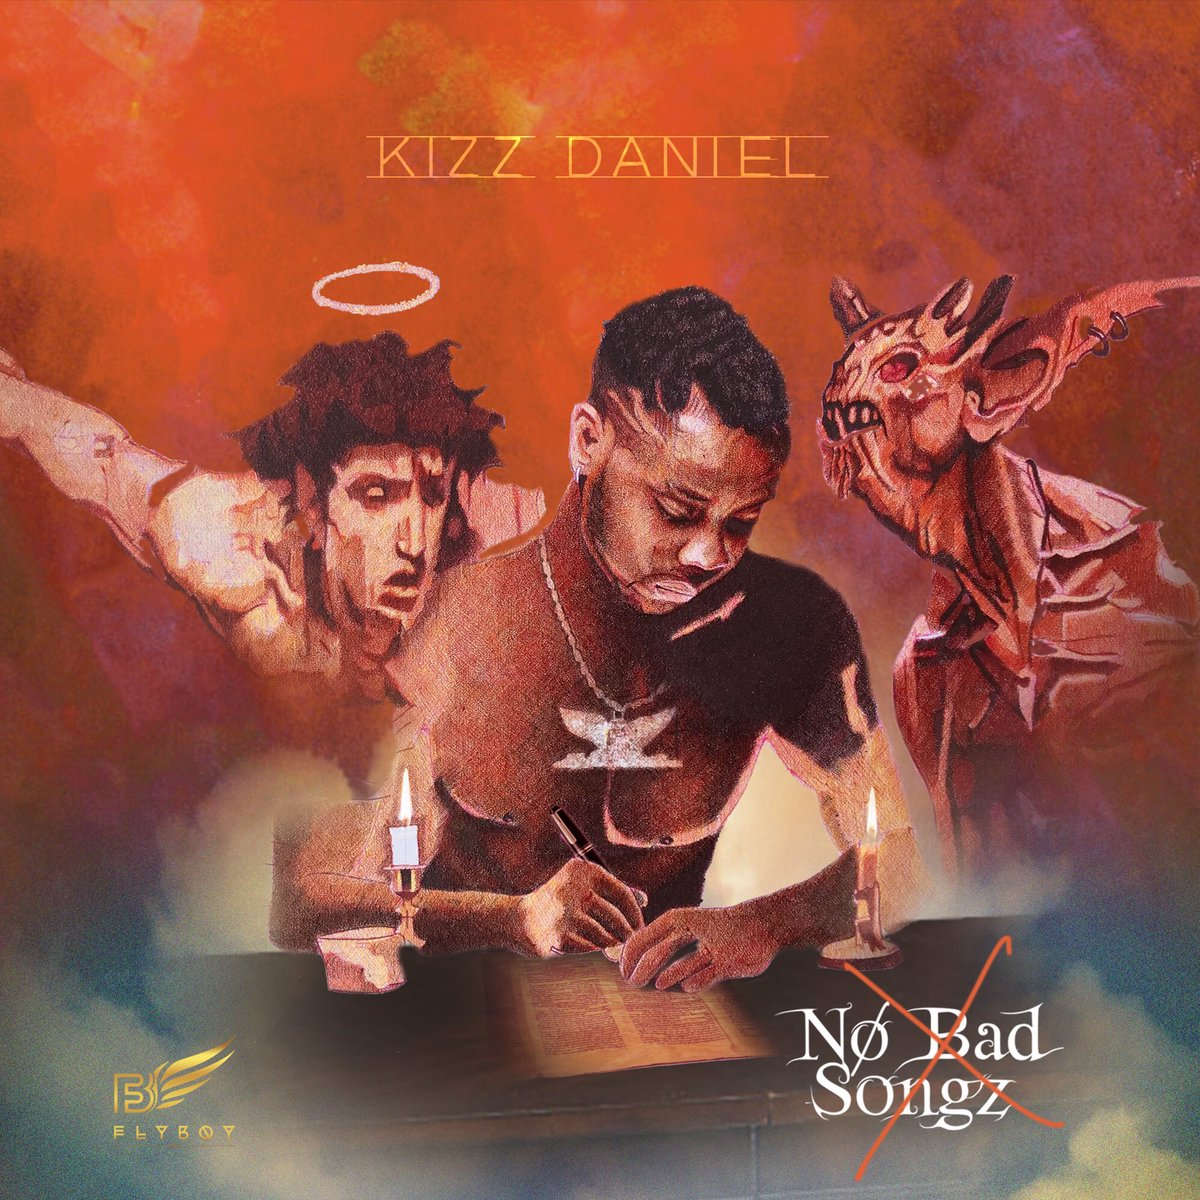 Kizz Daniel No Bad Songz Kiss Daniel